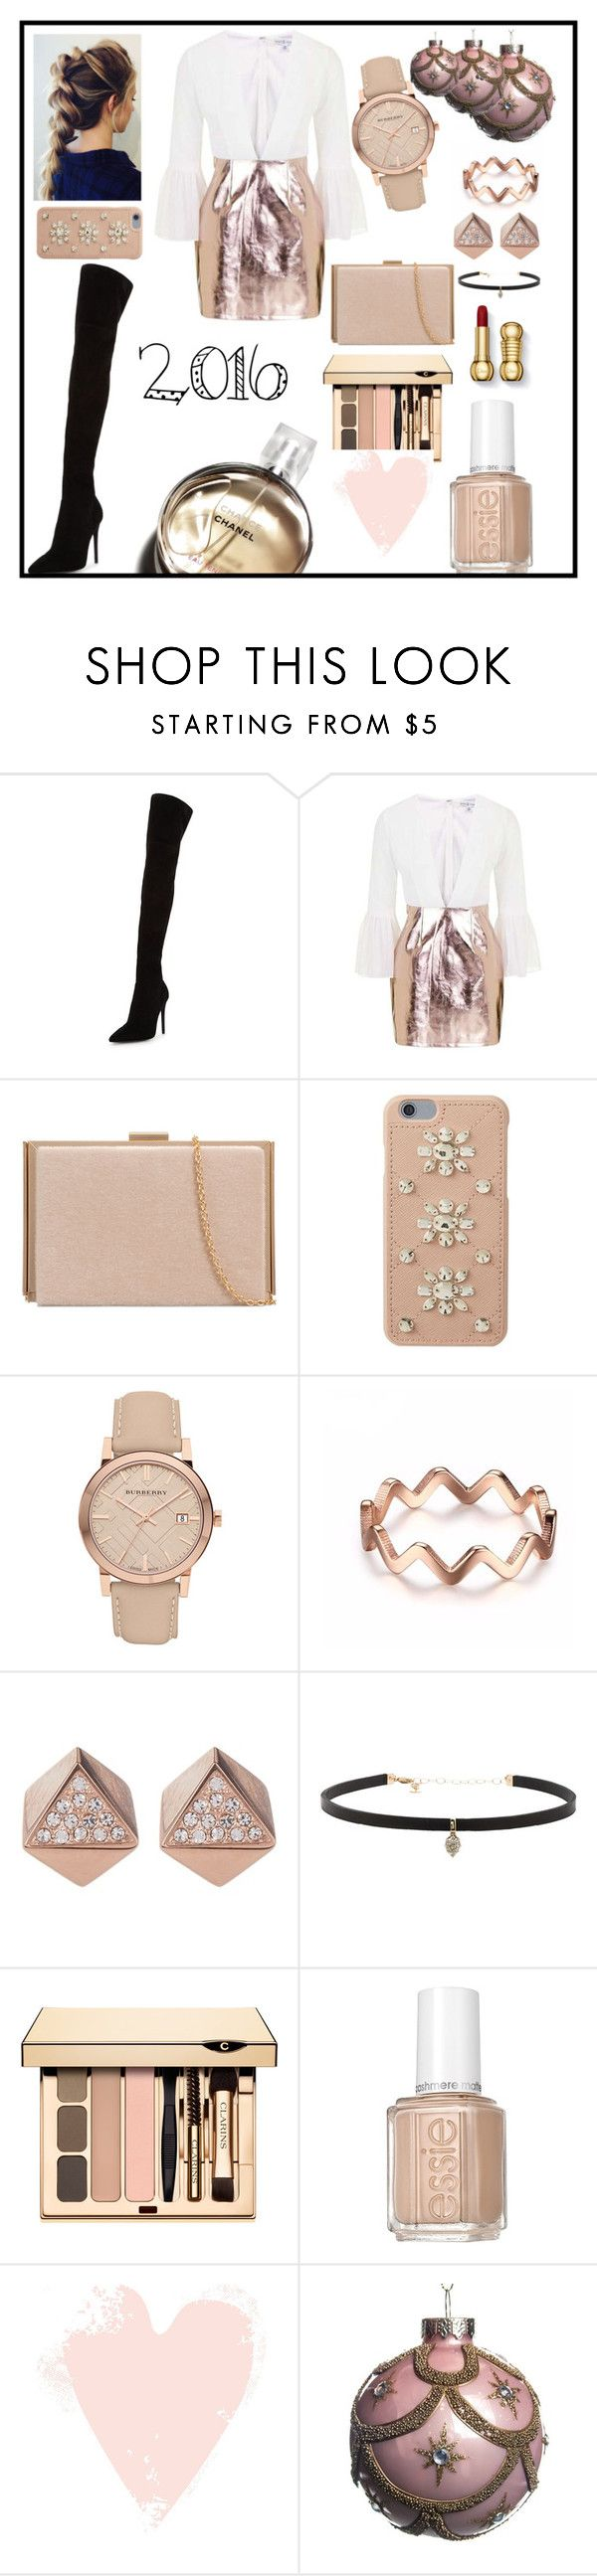 """""""Metallic trend and over-the-knee-boots trend #2016besttrend"""" by cecemontgommery ❤ liked on Polyvore featuring Kendall + Kylie, Topshop, MICHAEL Michael Kors, Burberry, FOSSIL, Carbon & Hyde, Essie and Chanel"""